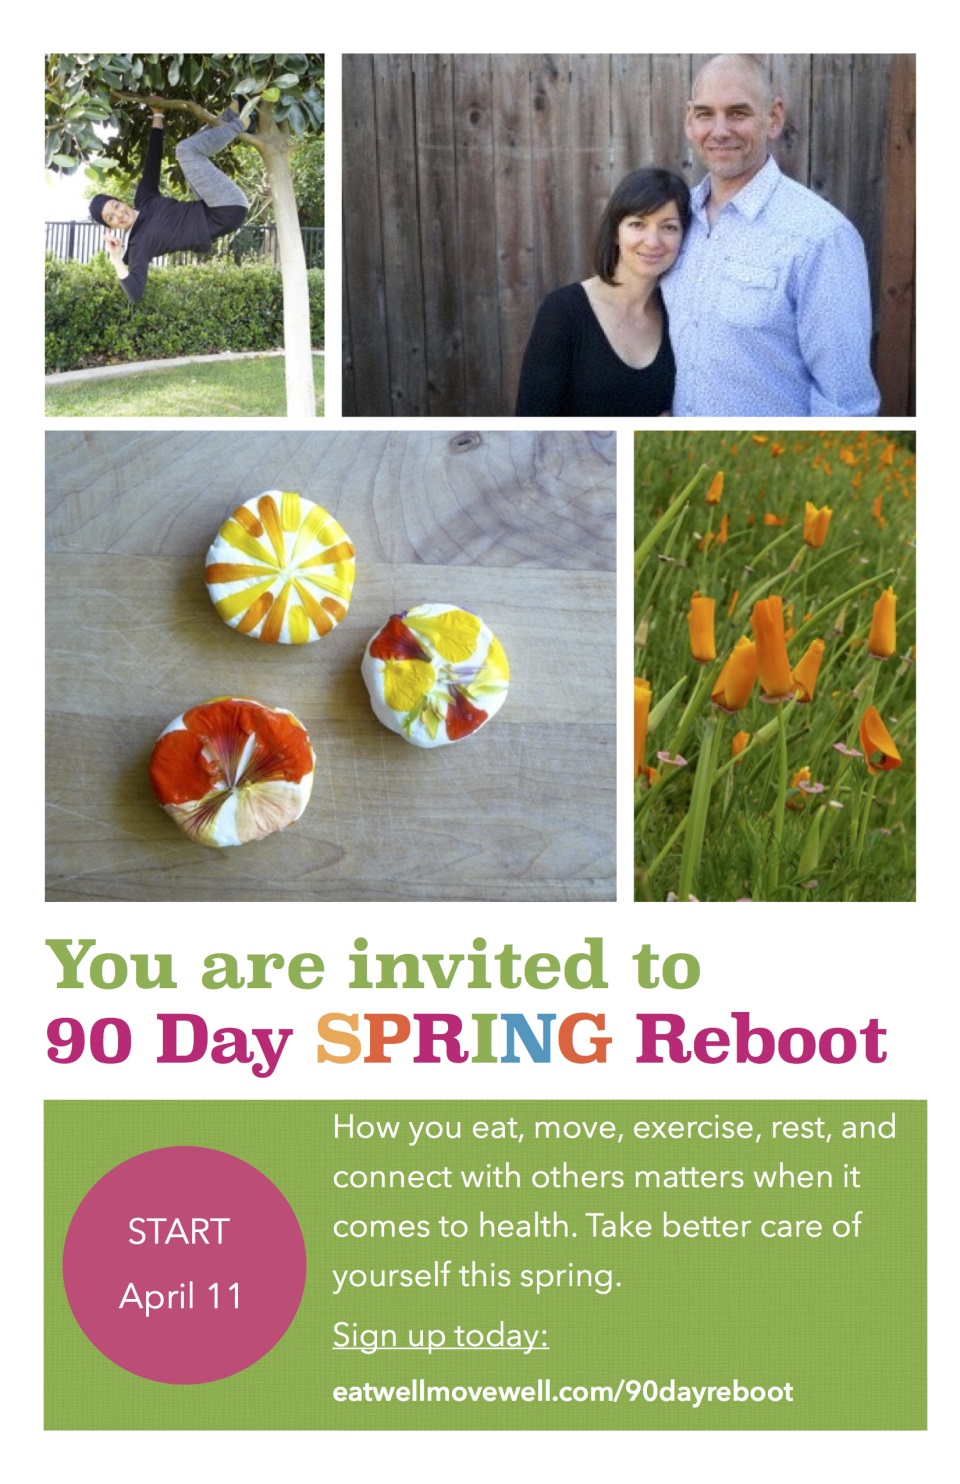 The 90 Day Spring Reboot